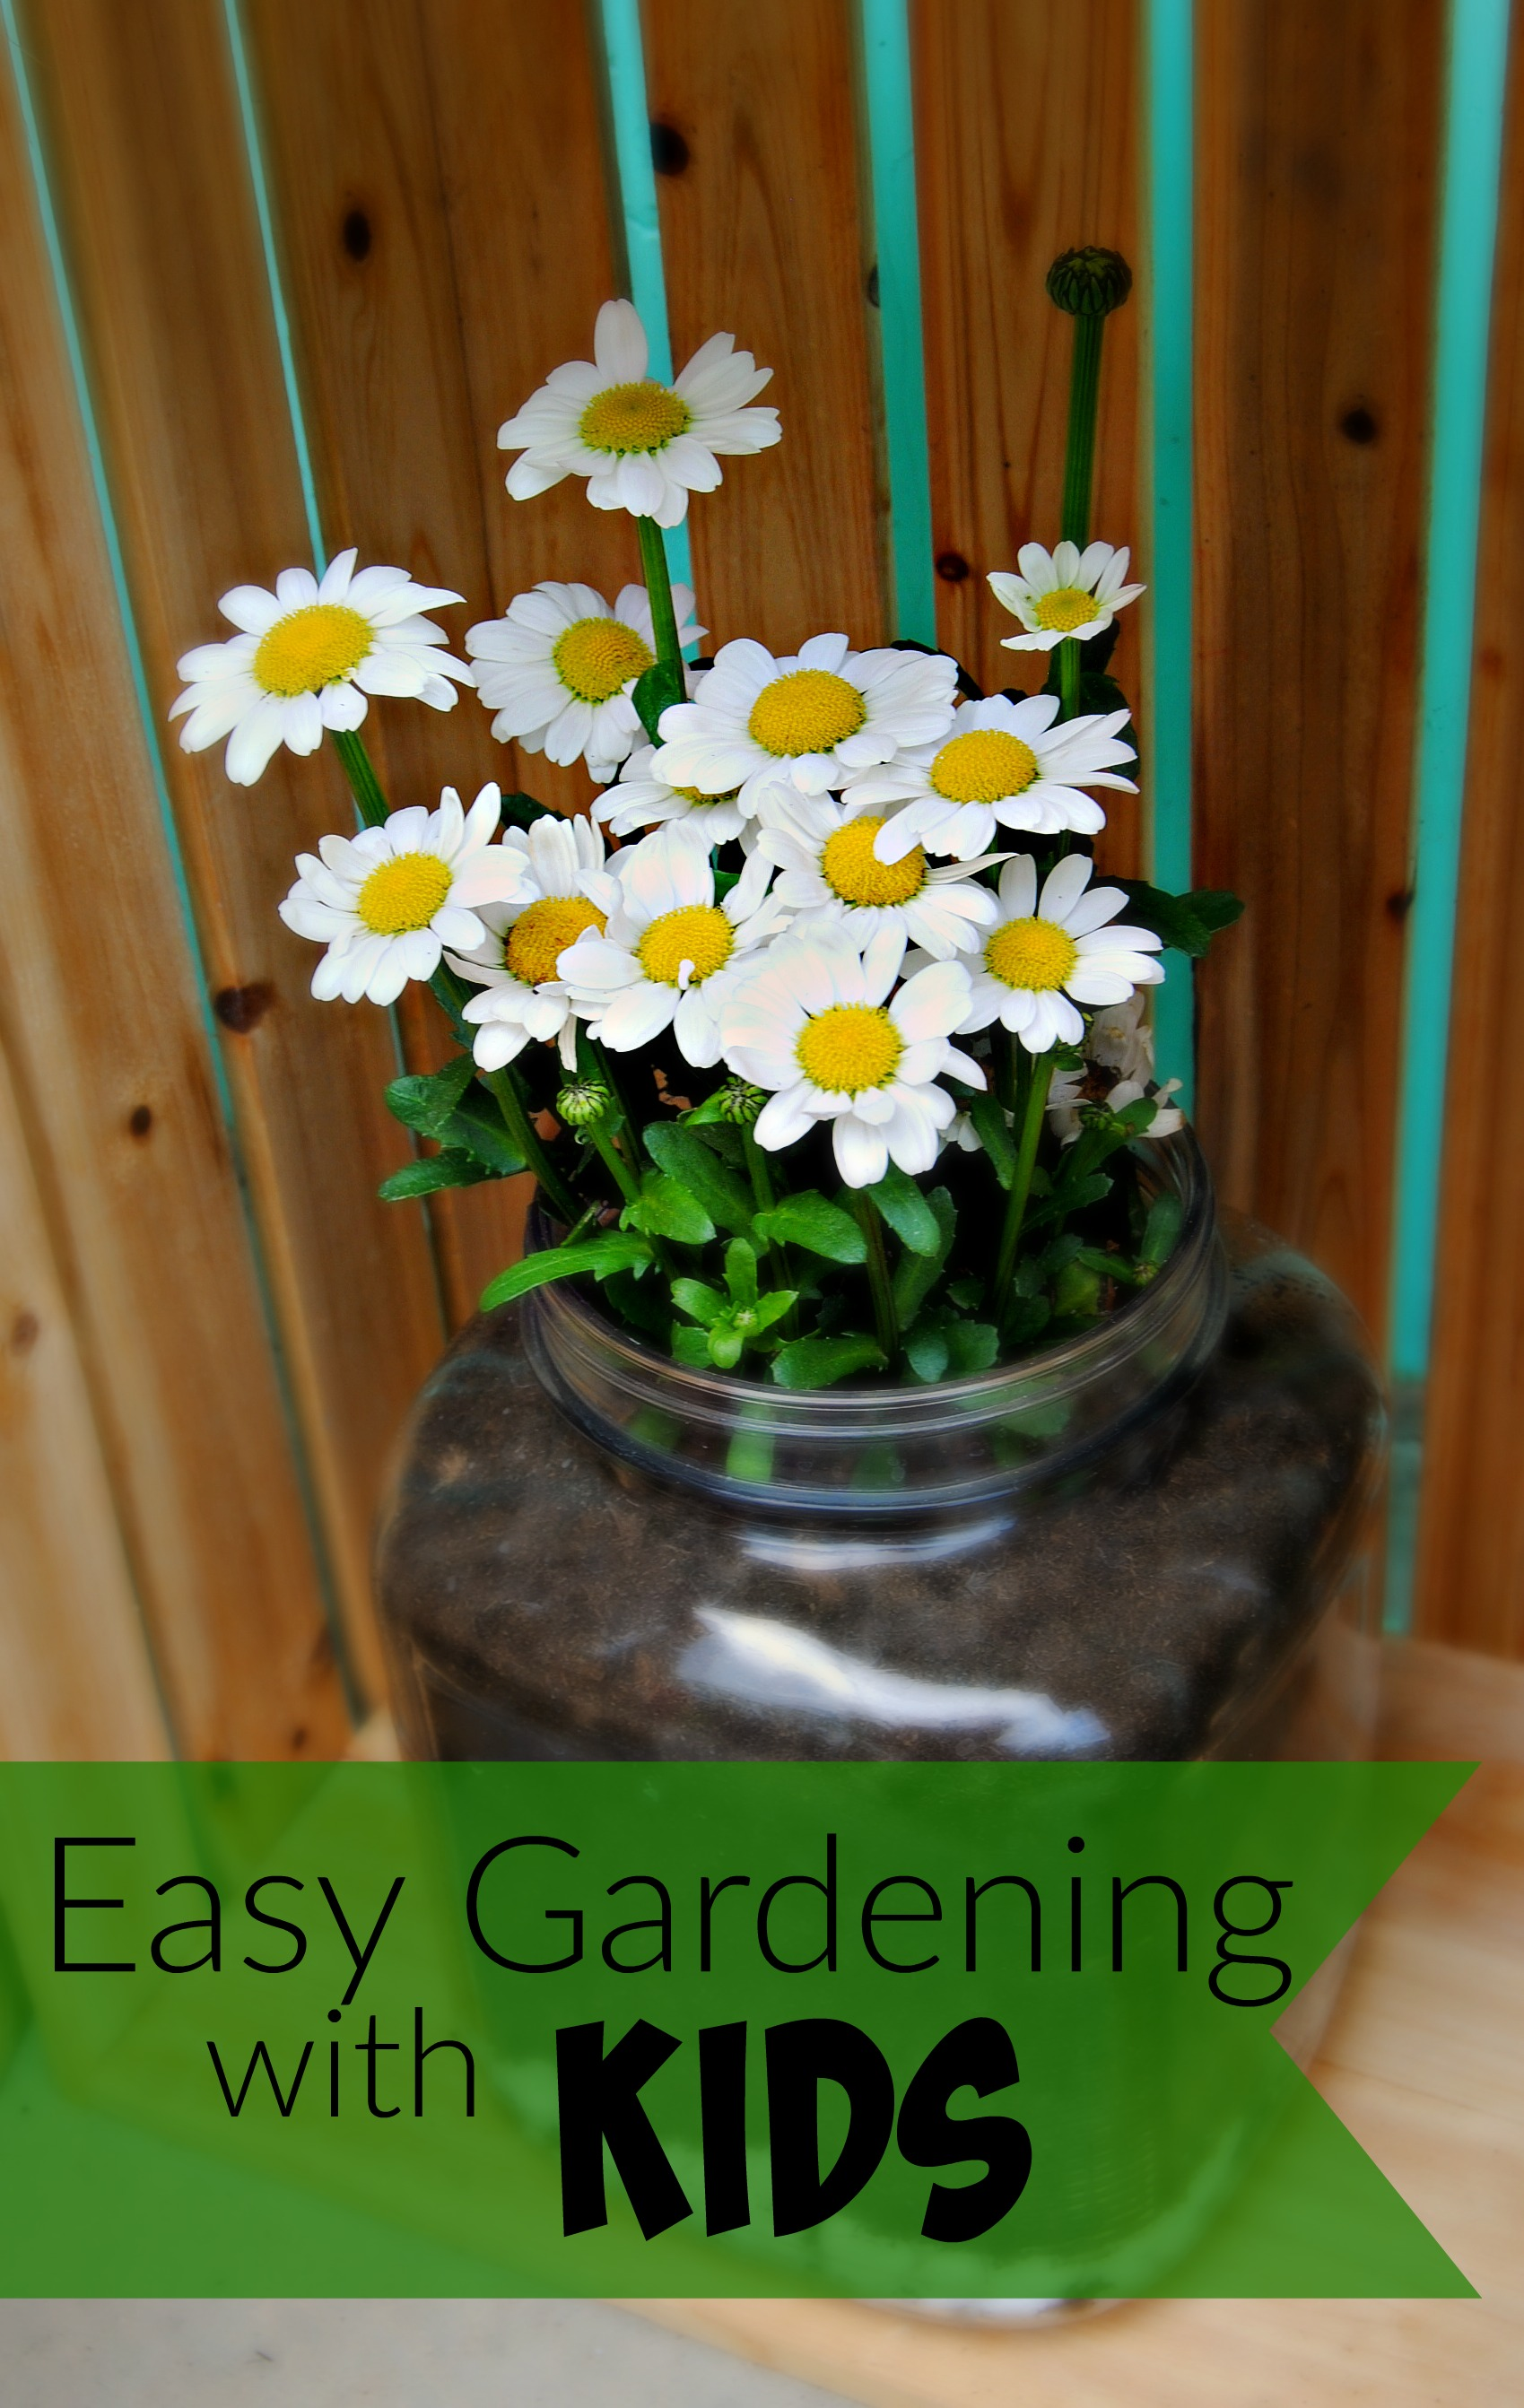 Easy Gardening with Kids